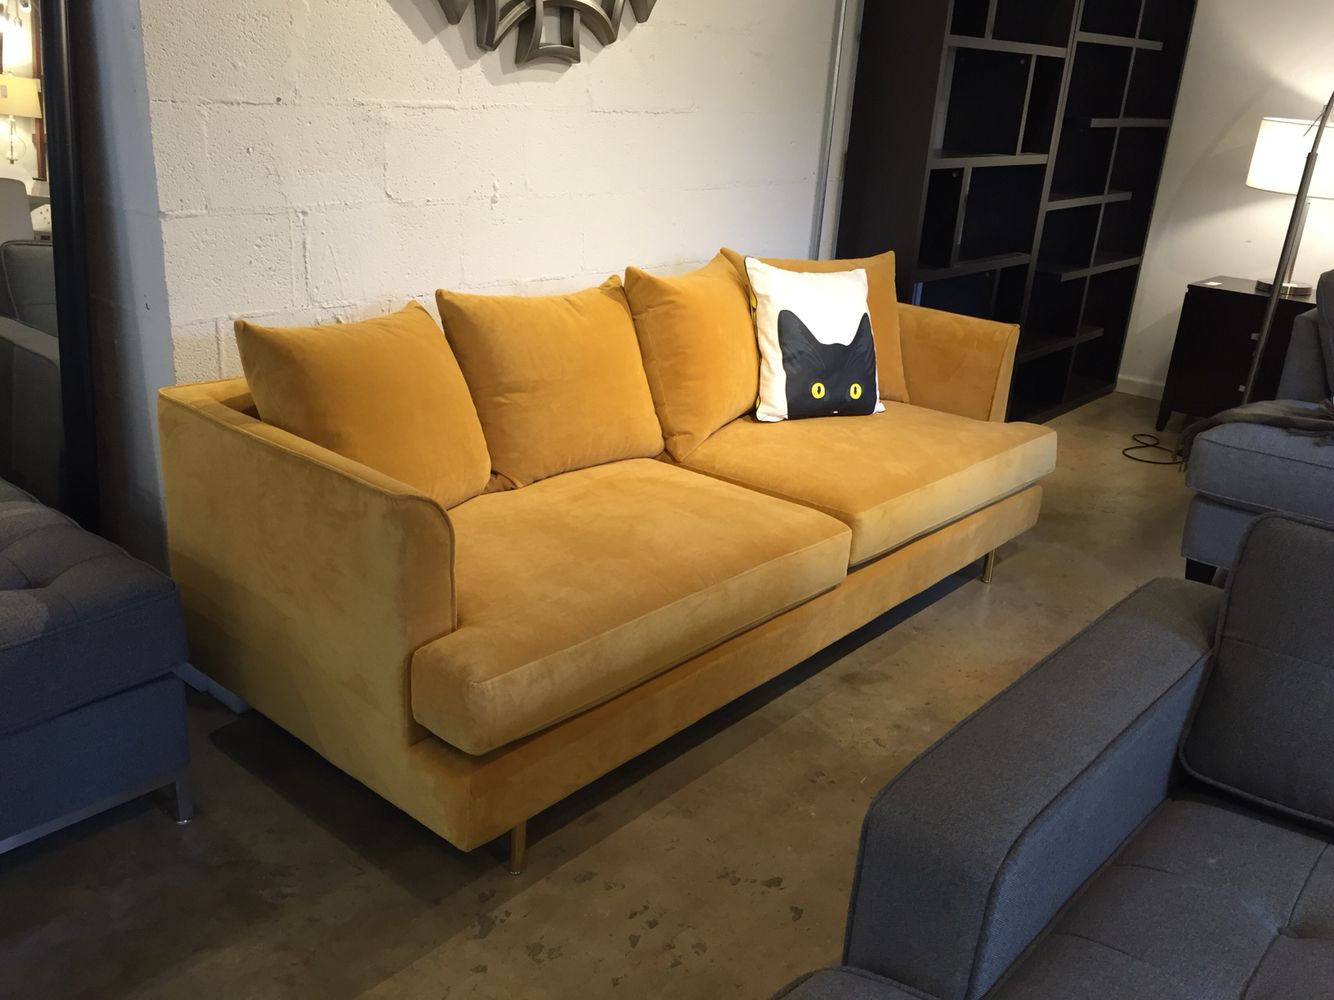 Gus modern margot sofa in velvet gold leaf at urbanloft for Gold velvet sectional sofa